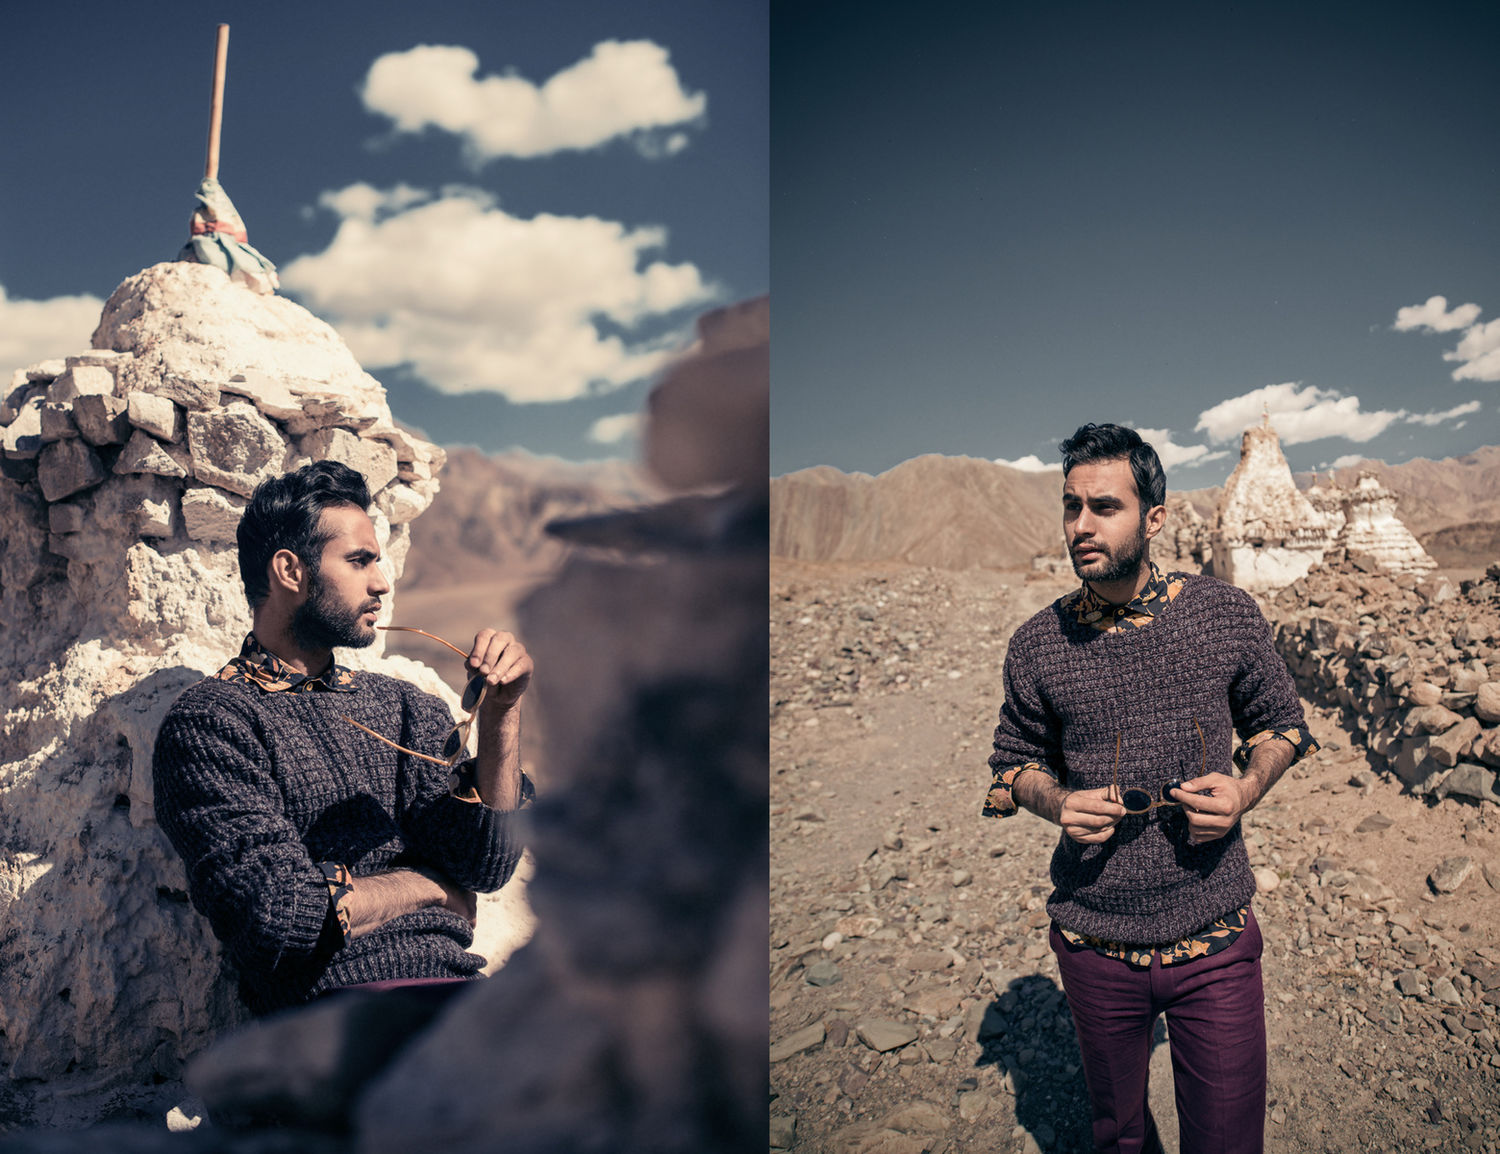 Udaybir for MW magazine. Photographed in Leh.